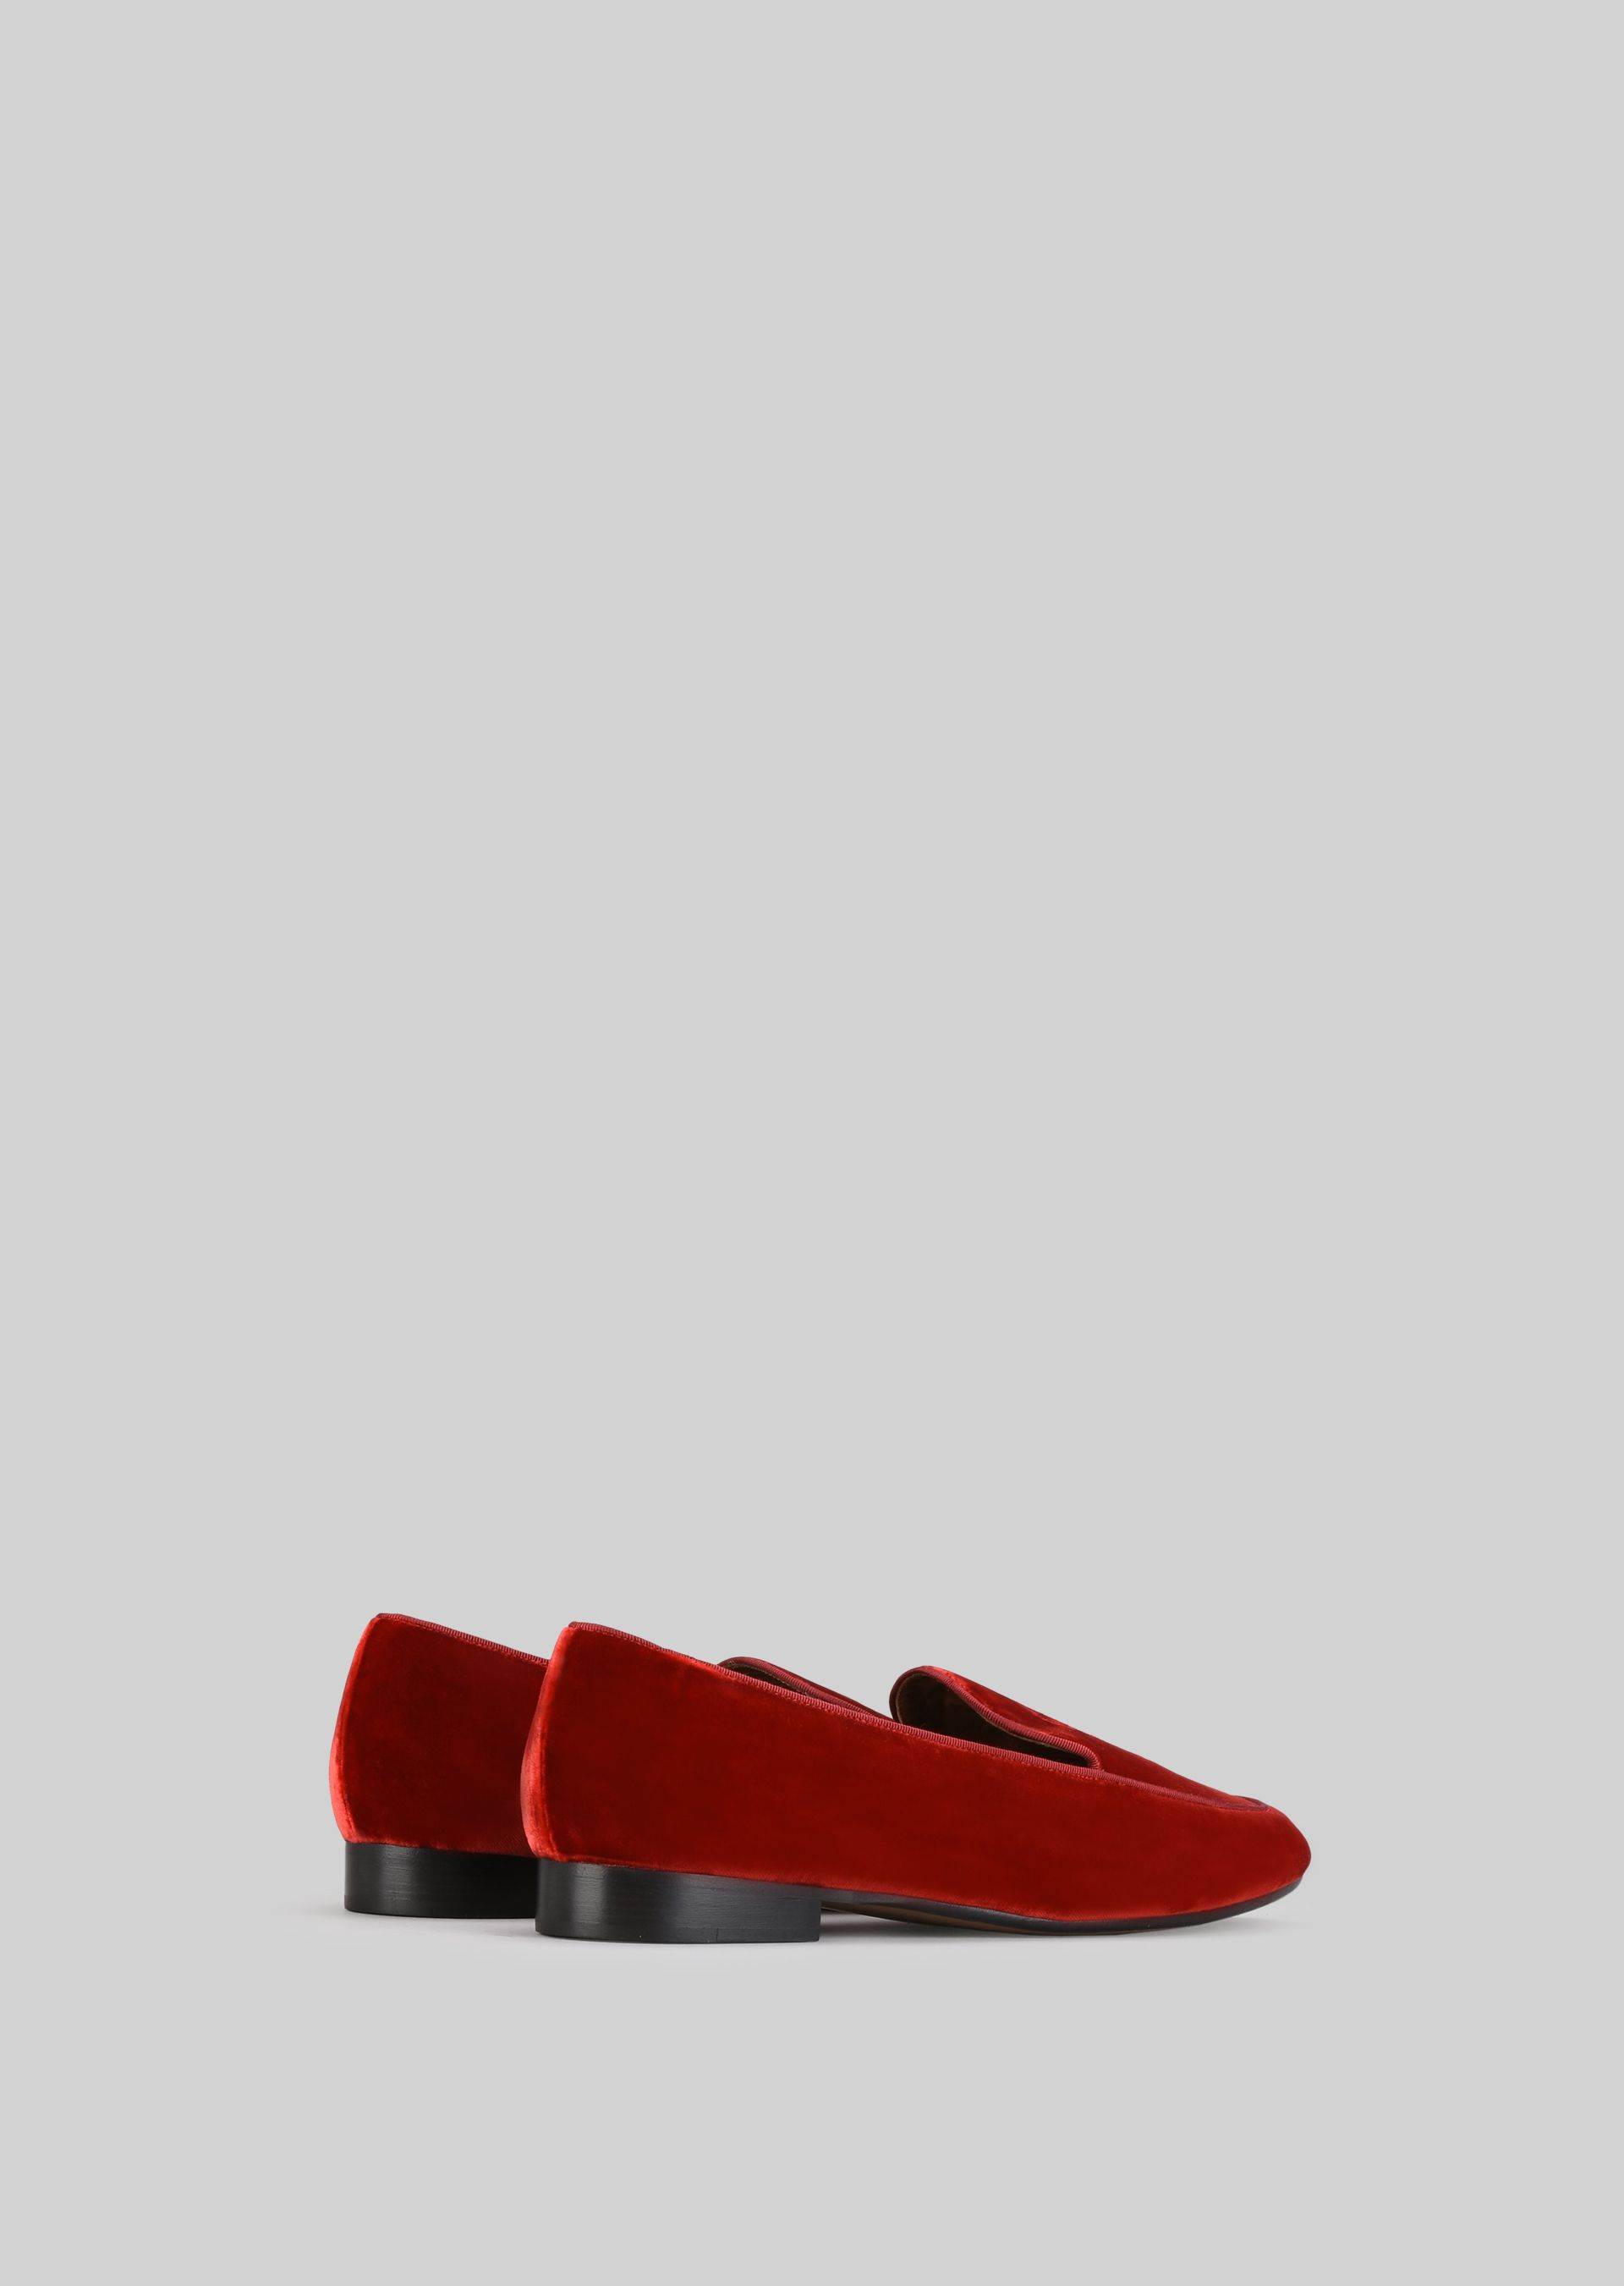 GIORGIO ARMANI VELVET LOAFERS Loafers D d